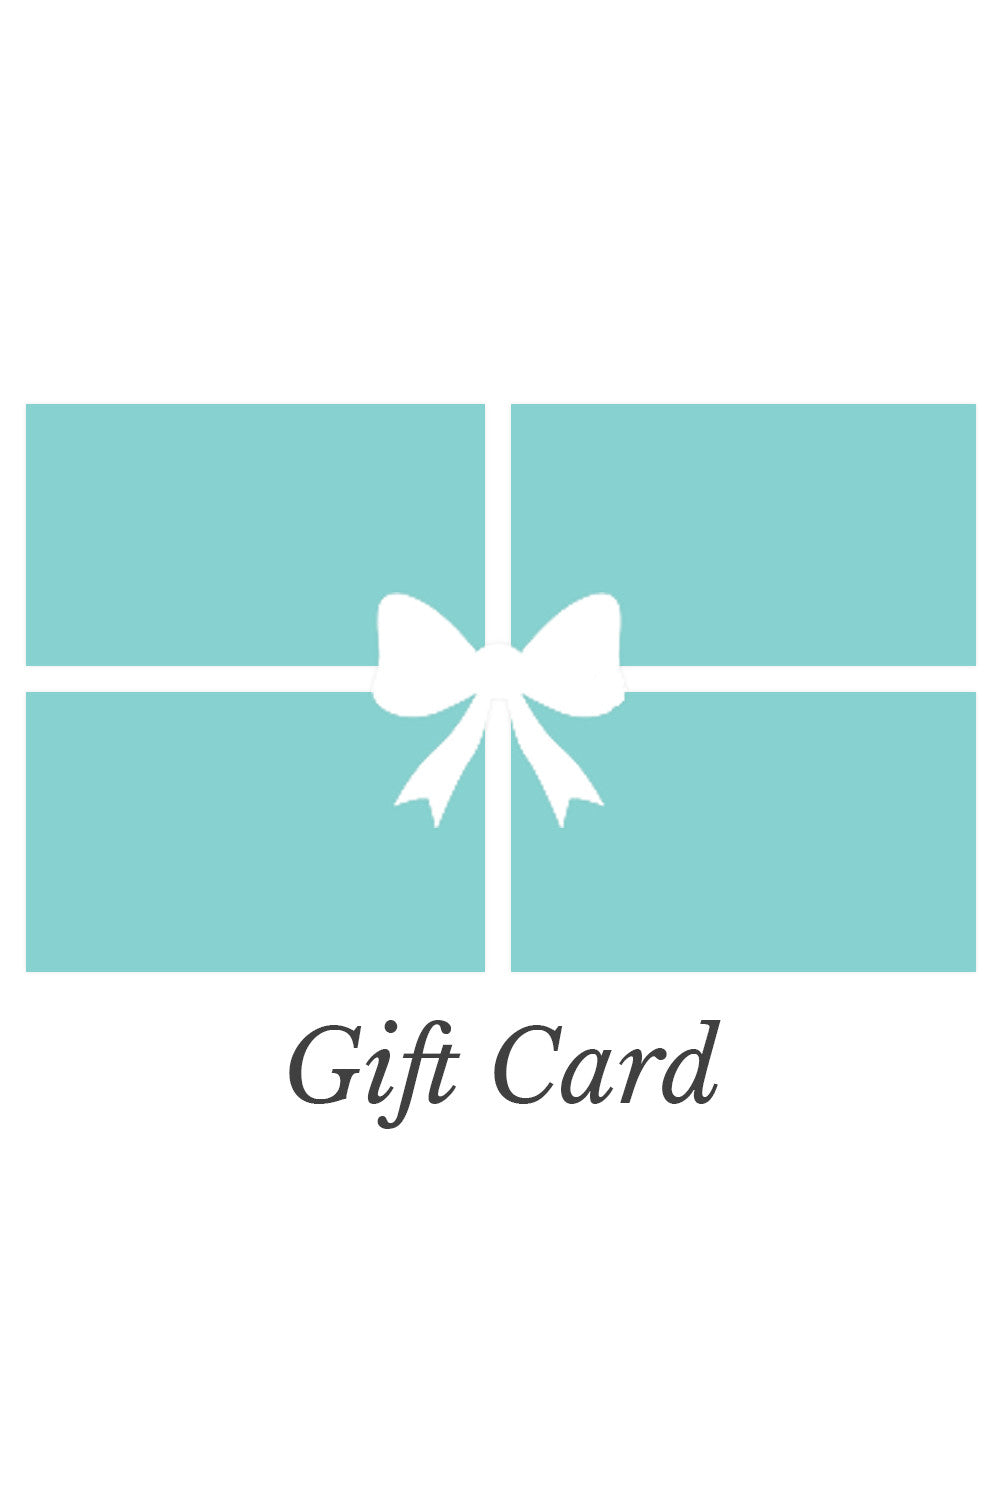 e gift shopping Egifts: online gifts for anyone, anytime easy and quick gift giving for any special occasion shopcom egifts add egift icon to add it to your egift.